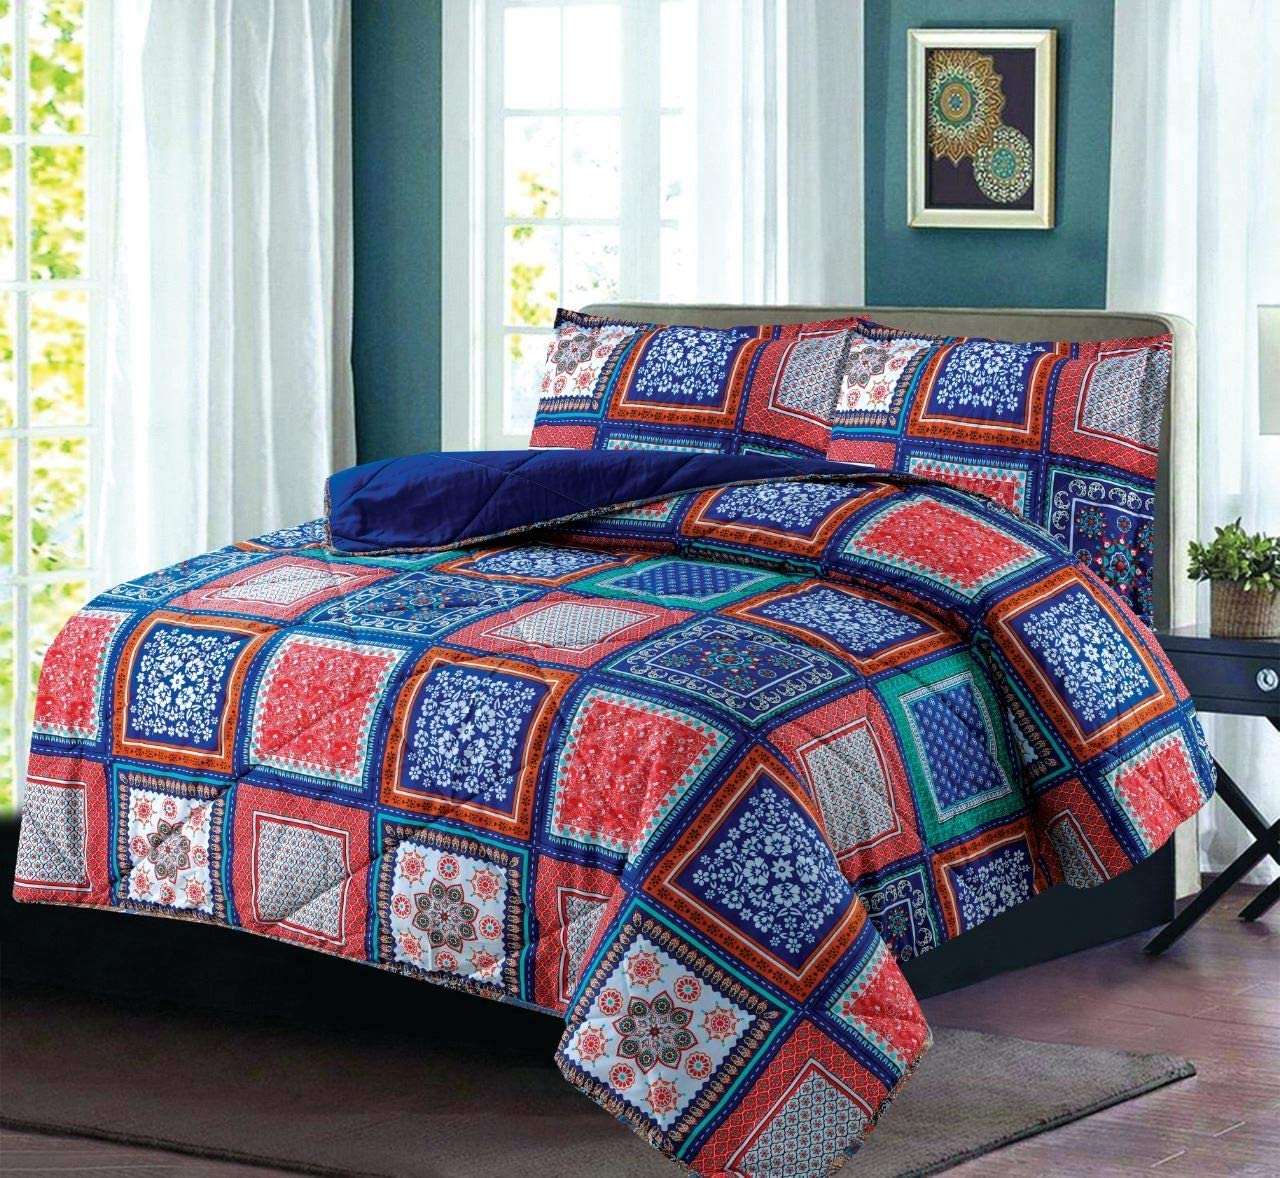 Amber SleepyNights Quilted Boho Grey Orange Floral Bedspread Throwover with Pillowshams